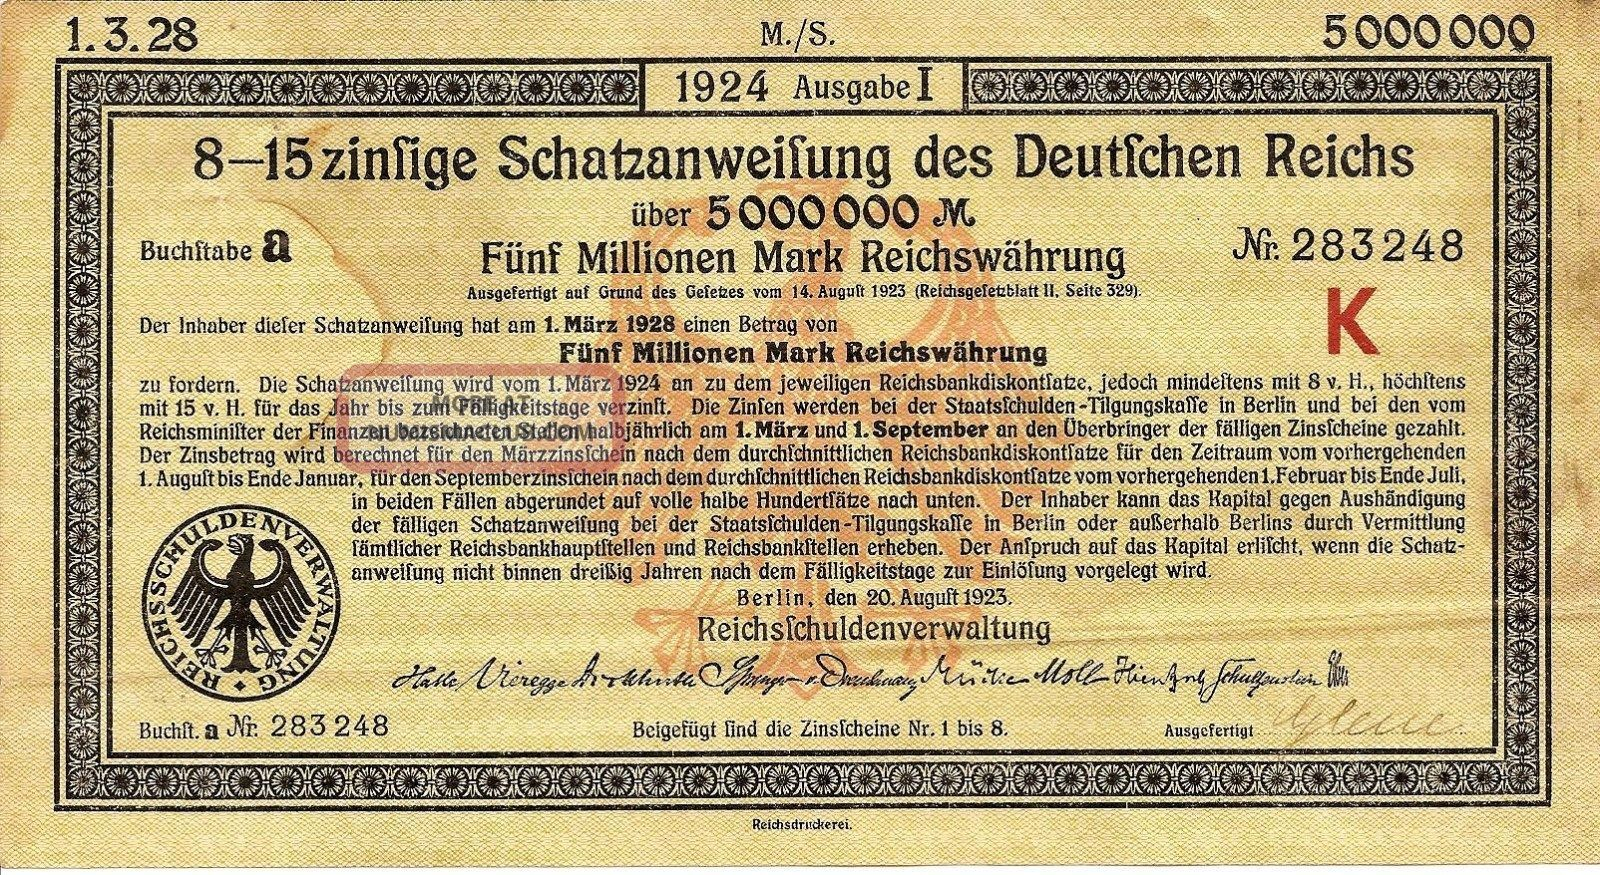 German Deutfchen Reichs Bond 5000000 Mark 1924 Issue W Coupons World photo